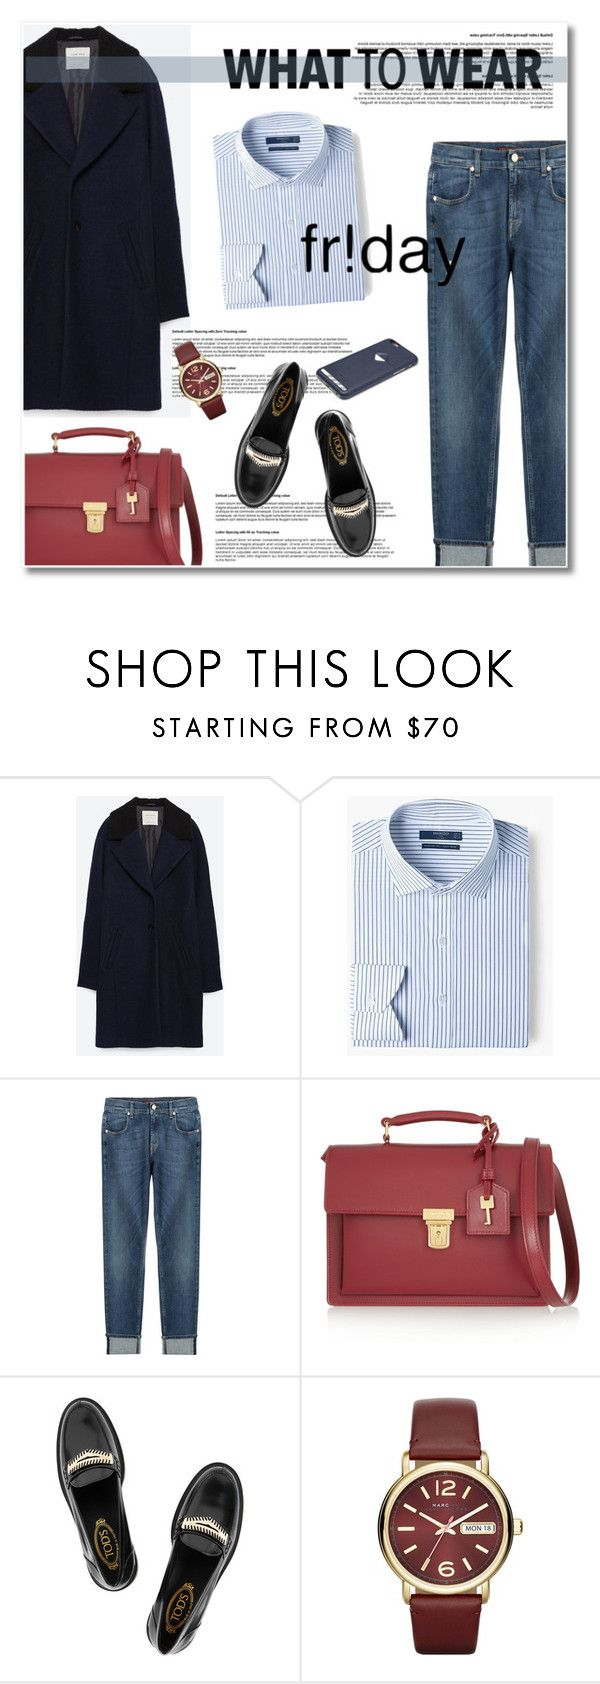 """""""black friday shopping"""" by limass ❤ liked on Polyvore featuring Zara, MANGO, 7 For All Mankind, Yves Saint Laurent, Tod's, Marc by Marc Jacobs, Bellroy and shoptilyoudrop"""